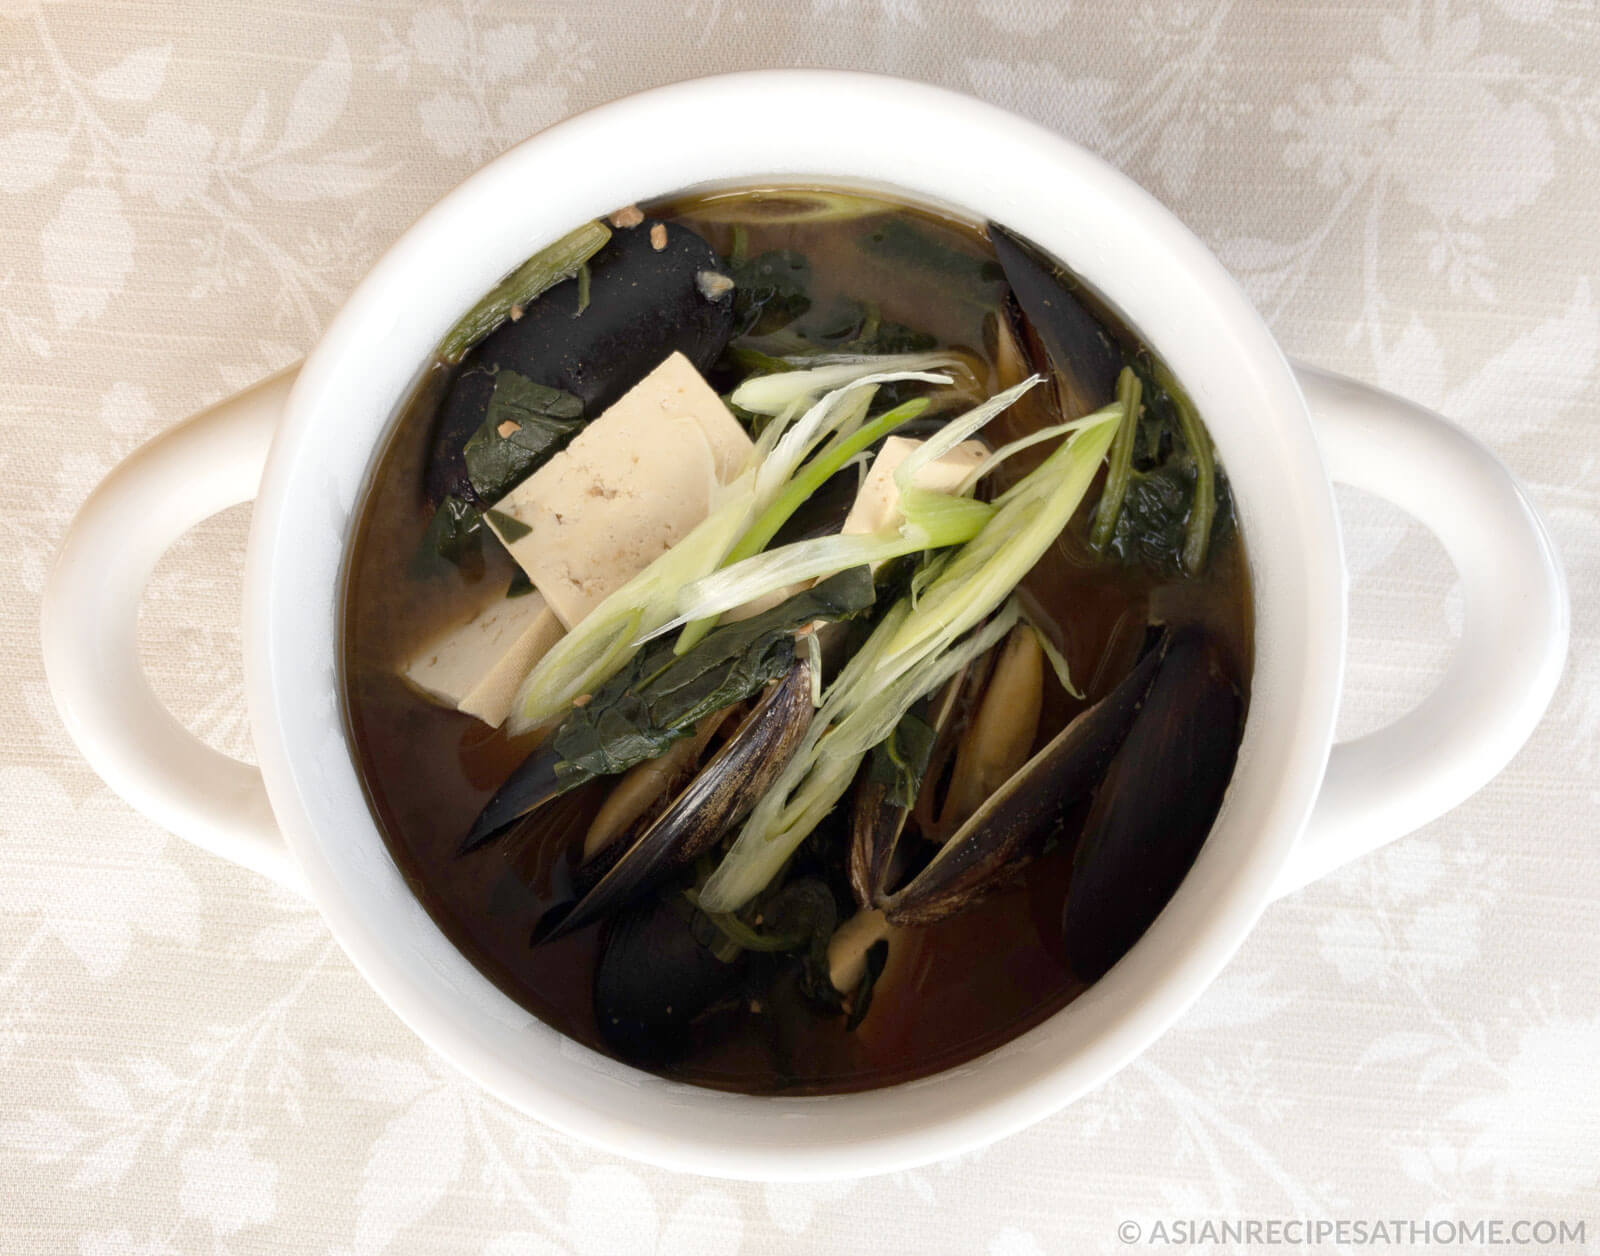 This Korean spinach and mussel fermented soybean (doenjang) soup is so easy to make and will make you feel good about eating it.